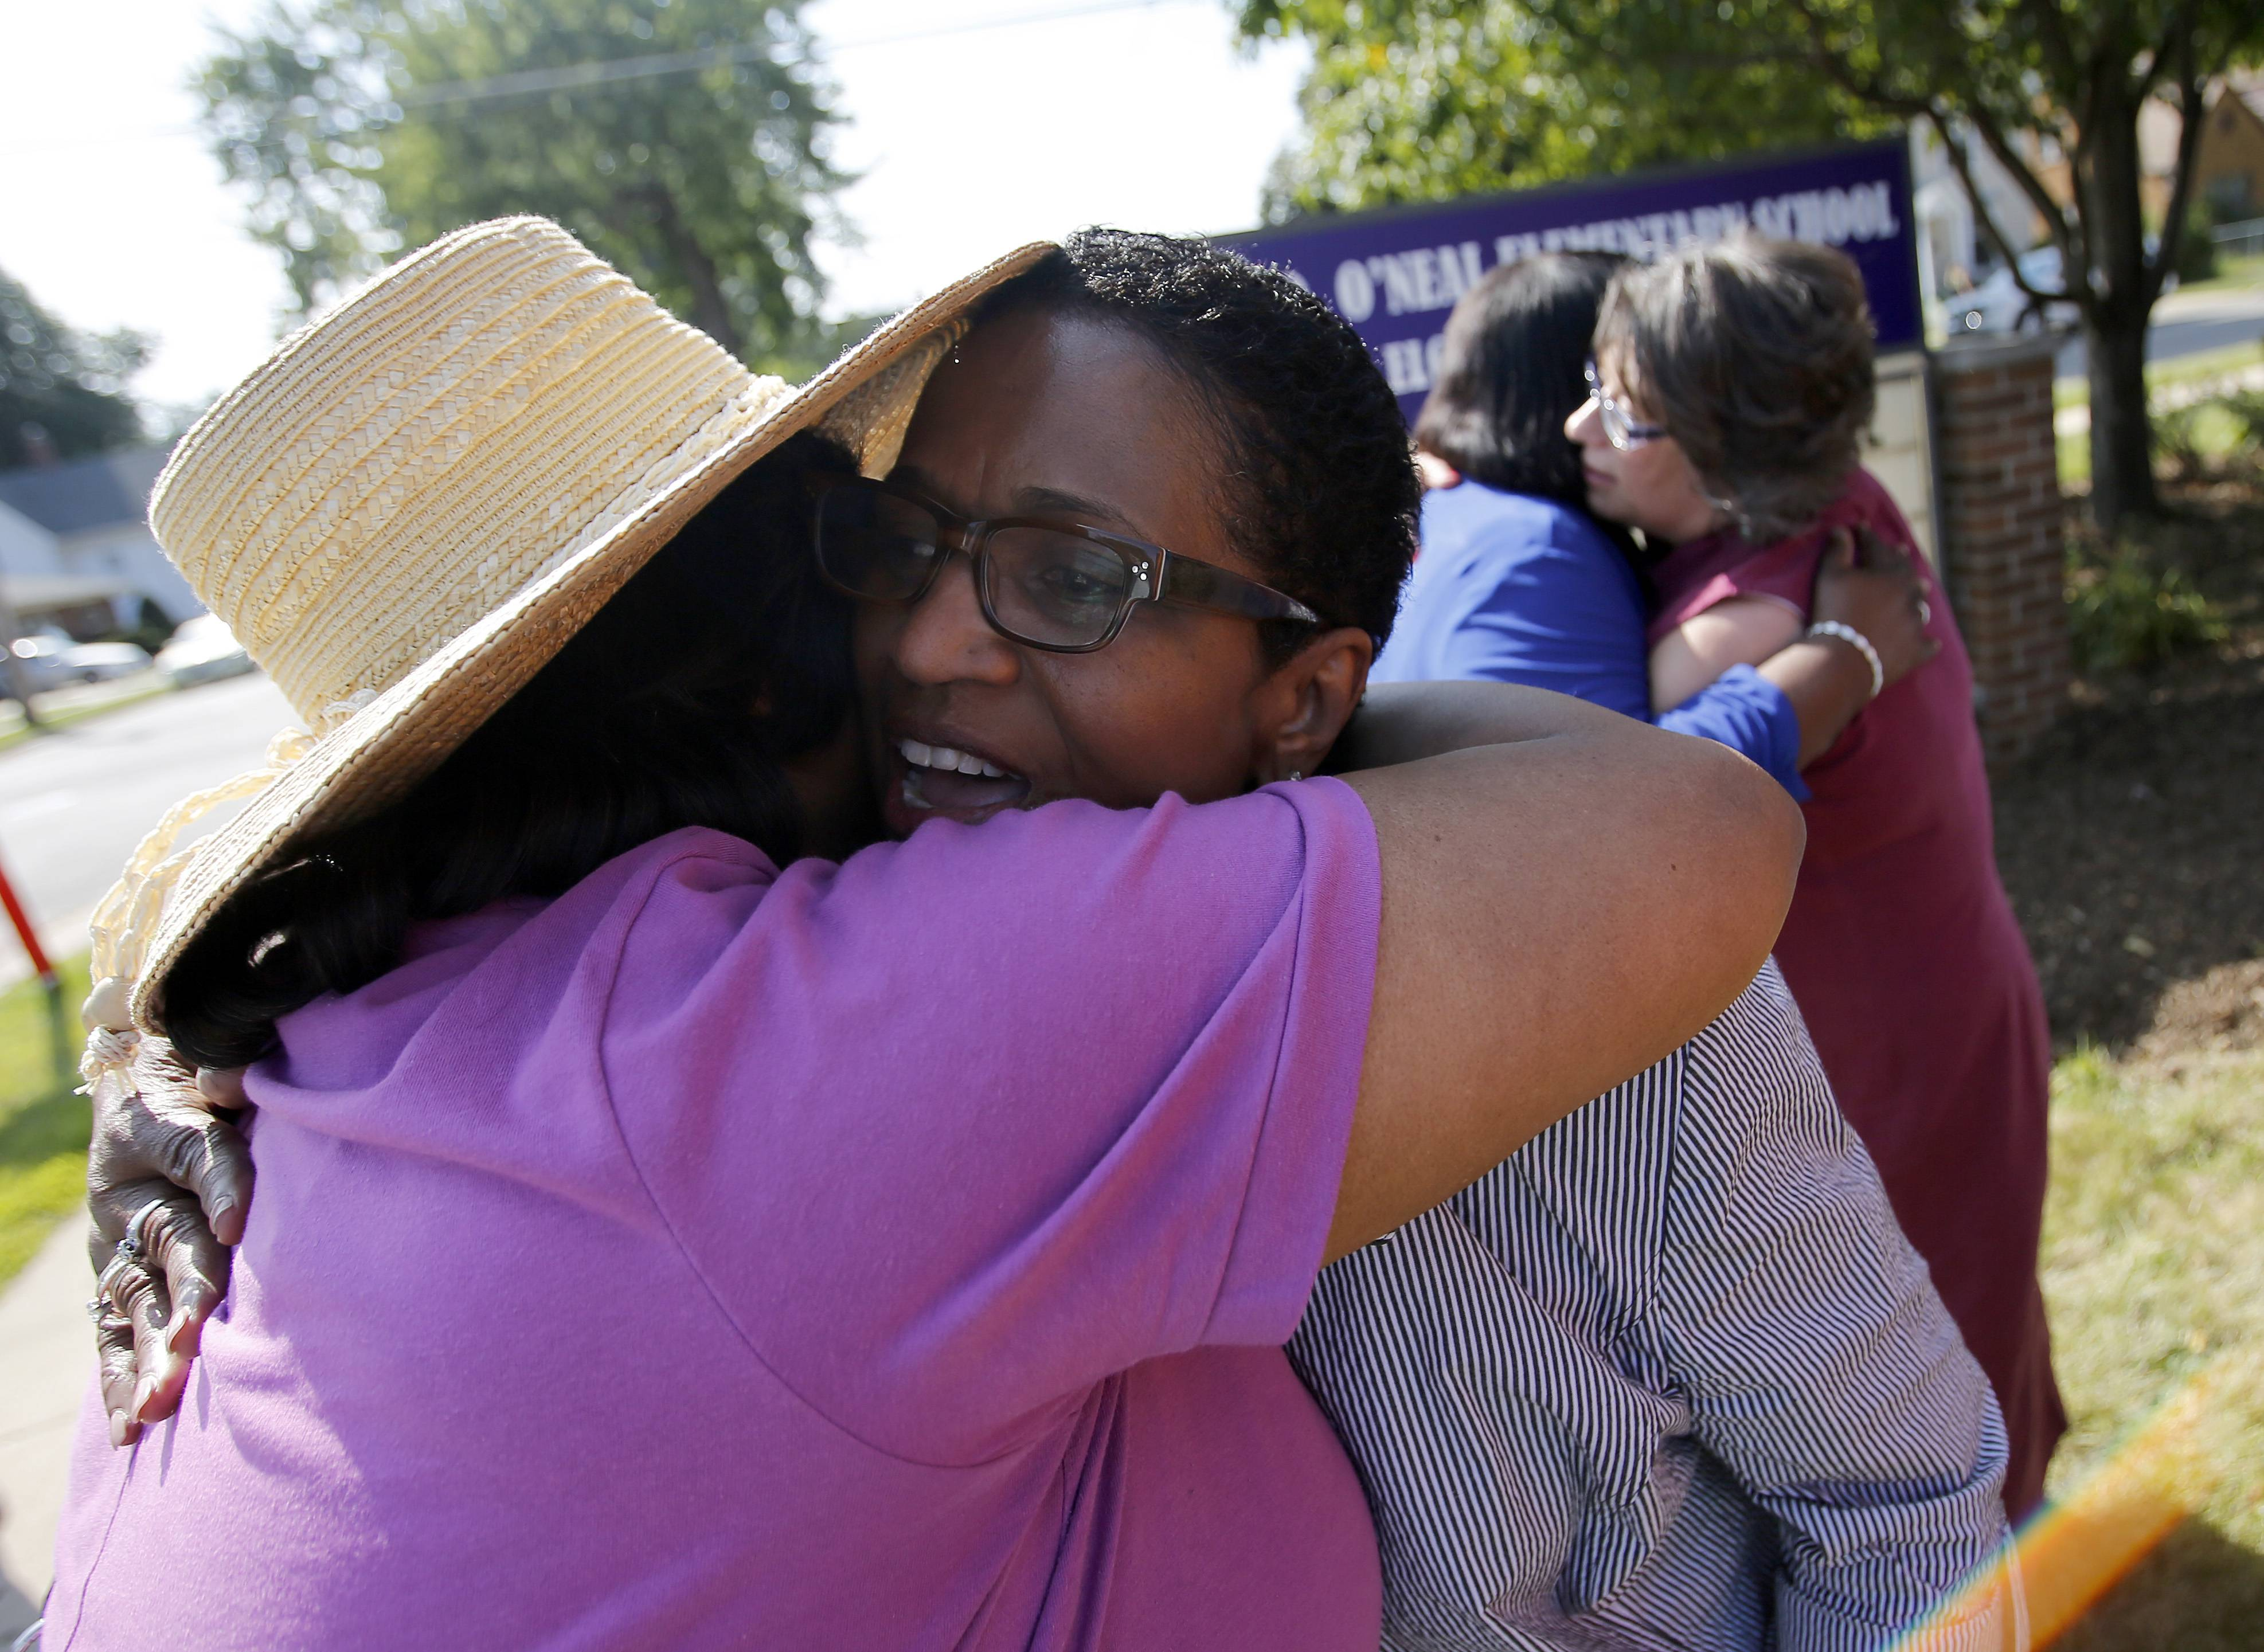 Carolyn O'Neal, (wife of the late Ronald D. O'Neal) right, gets a hug from Delores Mayes-Howard after a renaming ceremony for Sheridan Elementary School to Ronald D. O'Neal Elementary School Friday in Elgin. The school was renamed in honor of the district's first African American administrator.